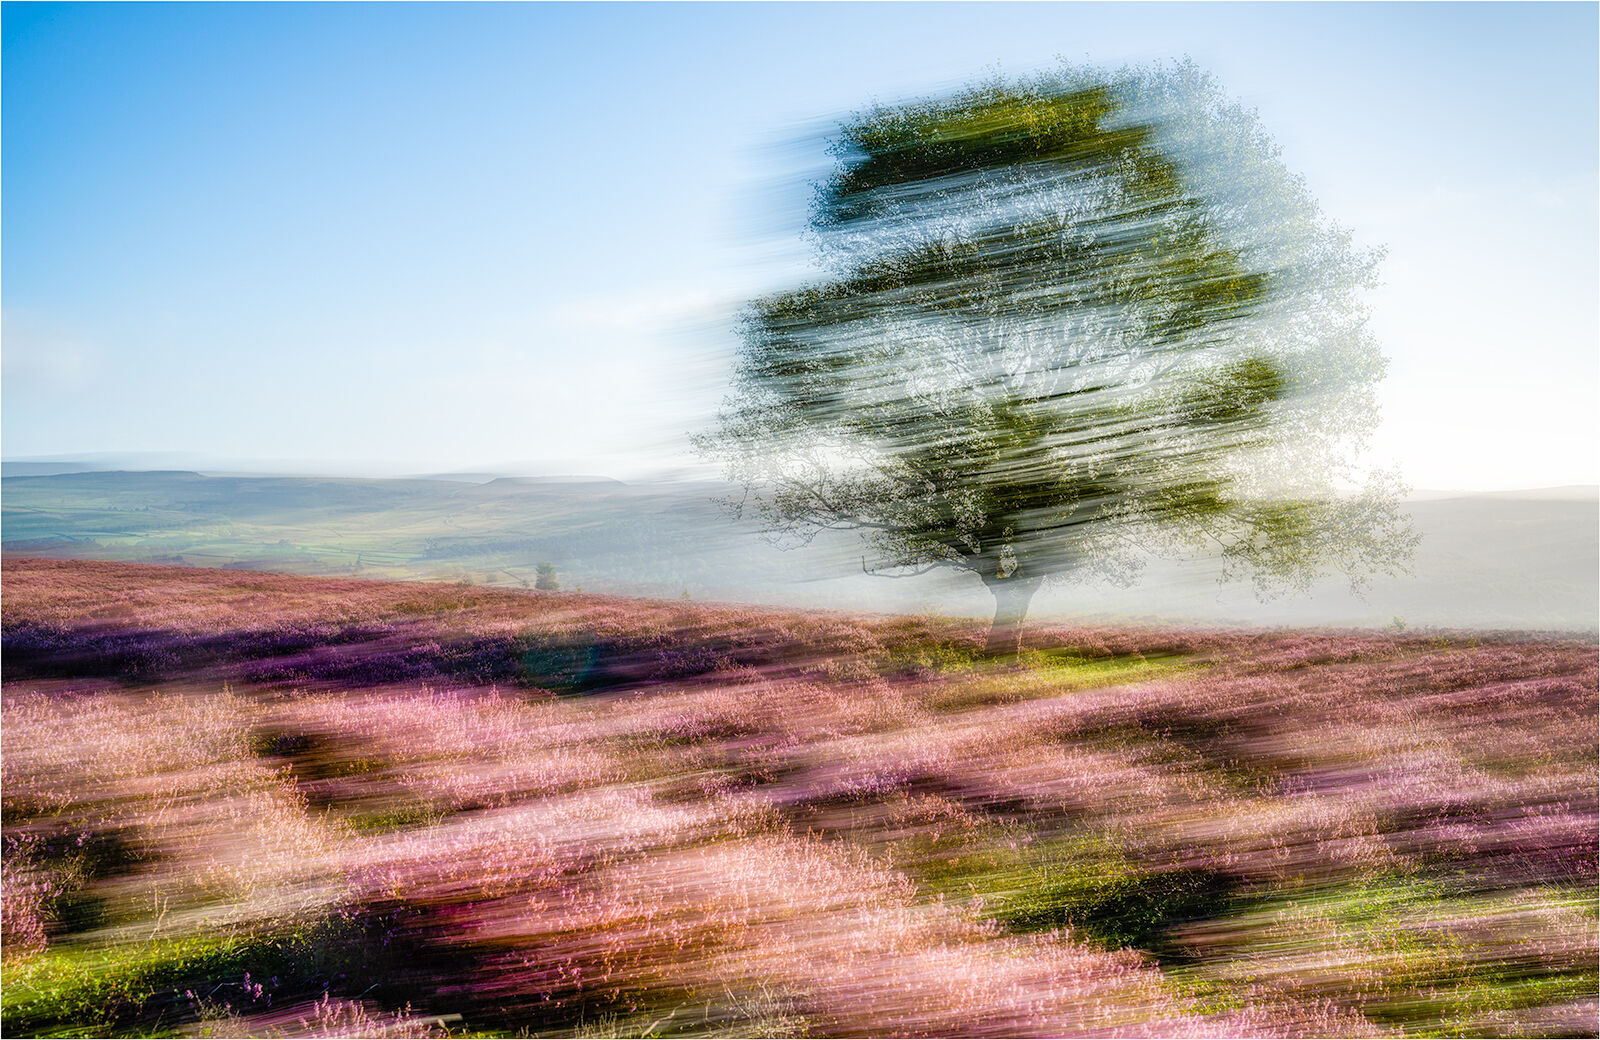 LONE TREE AT HEATHER TIME